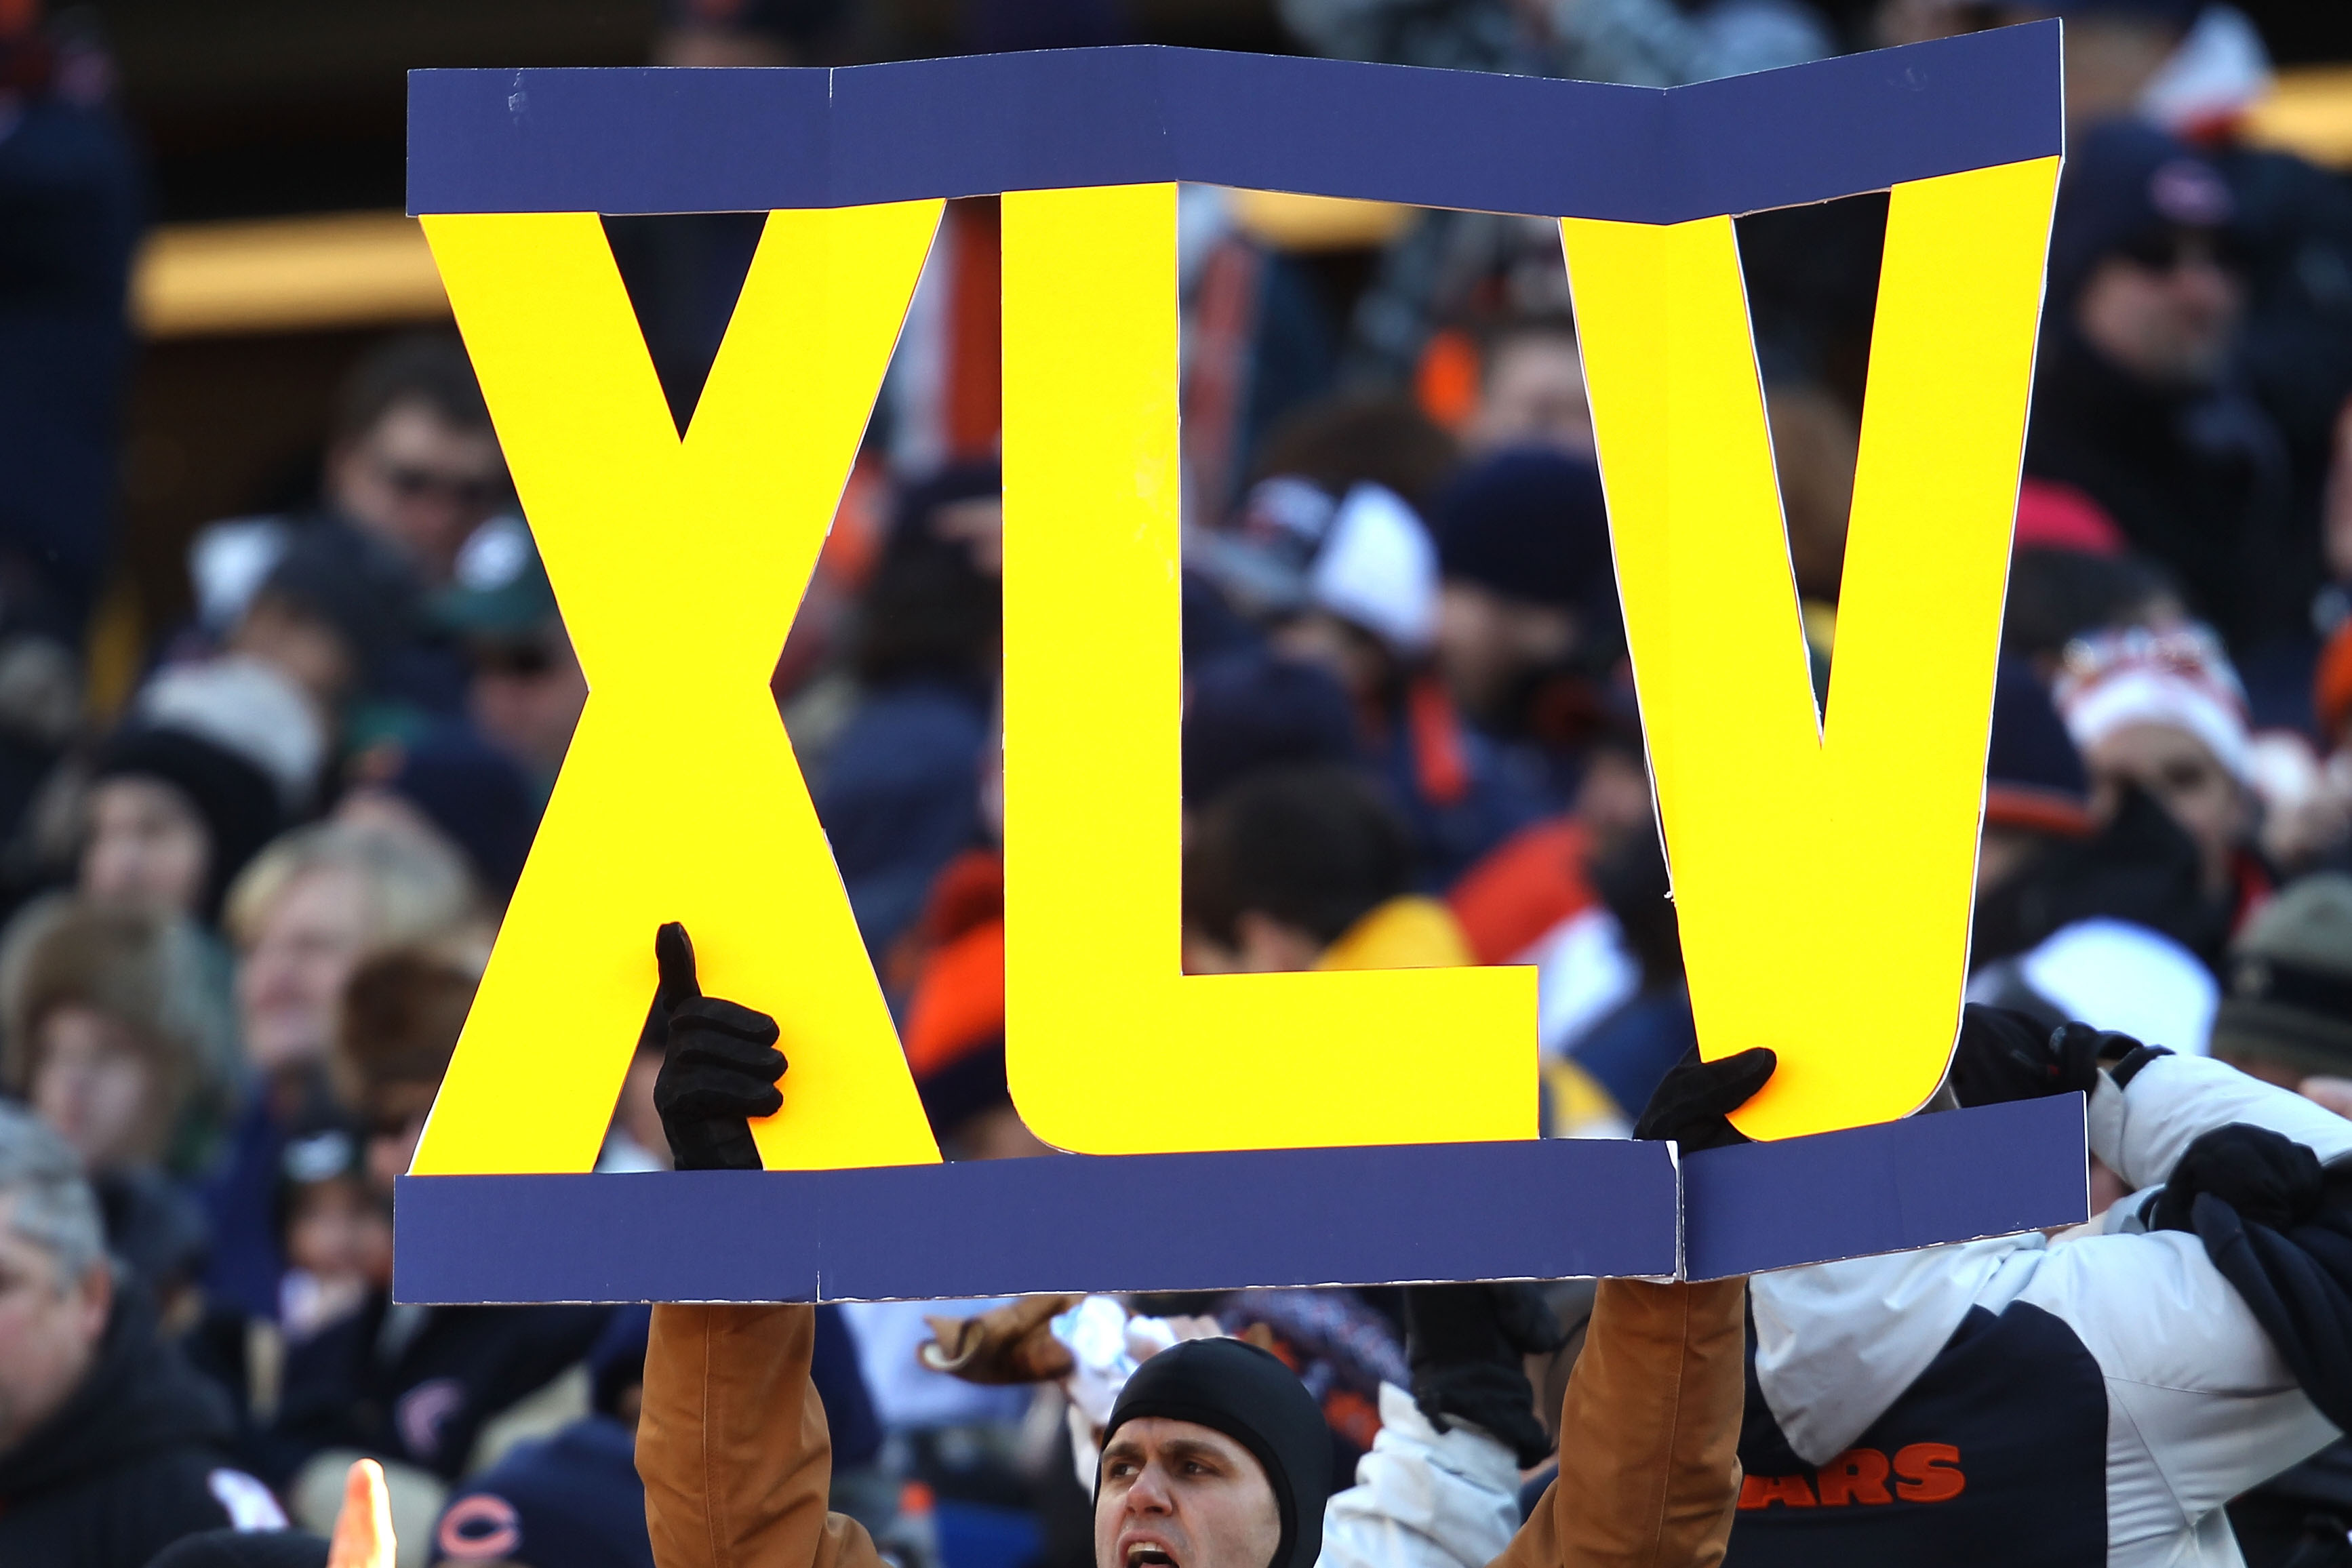 CHICAGO, IL - JANUARY 23:  A fan holds a sign 'XLV'  for the Super Bowl in two weeks in Arlington, Texas in the NFC Championship Game at Soldier Field on January 23, 2011 in Chicago, Illinois.  (Photo by Jonathan Daniel/Getty Images)